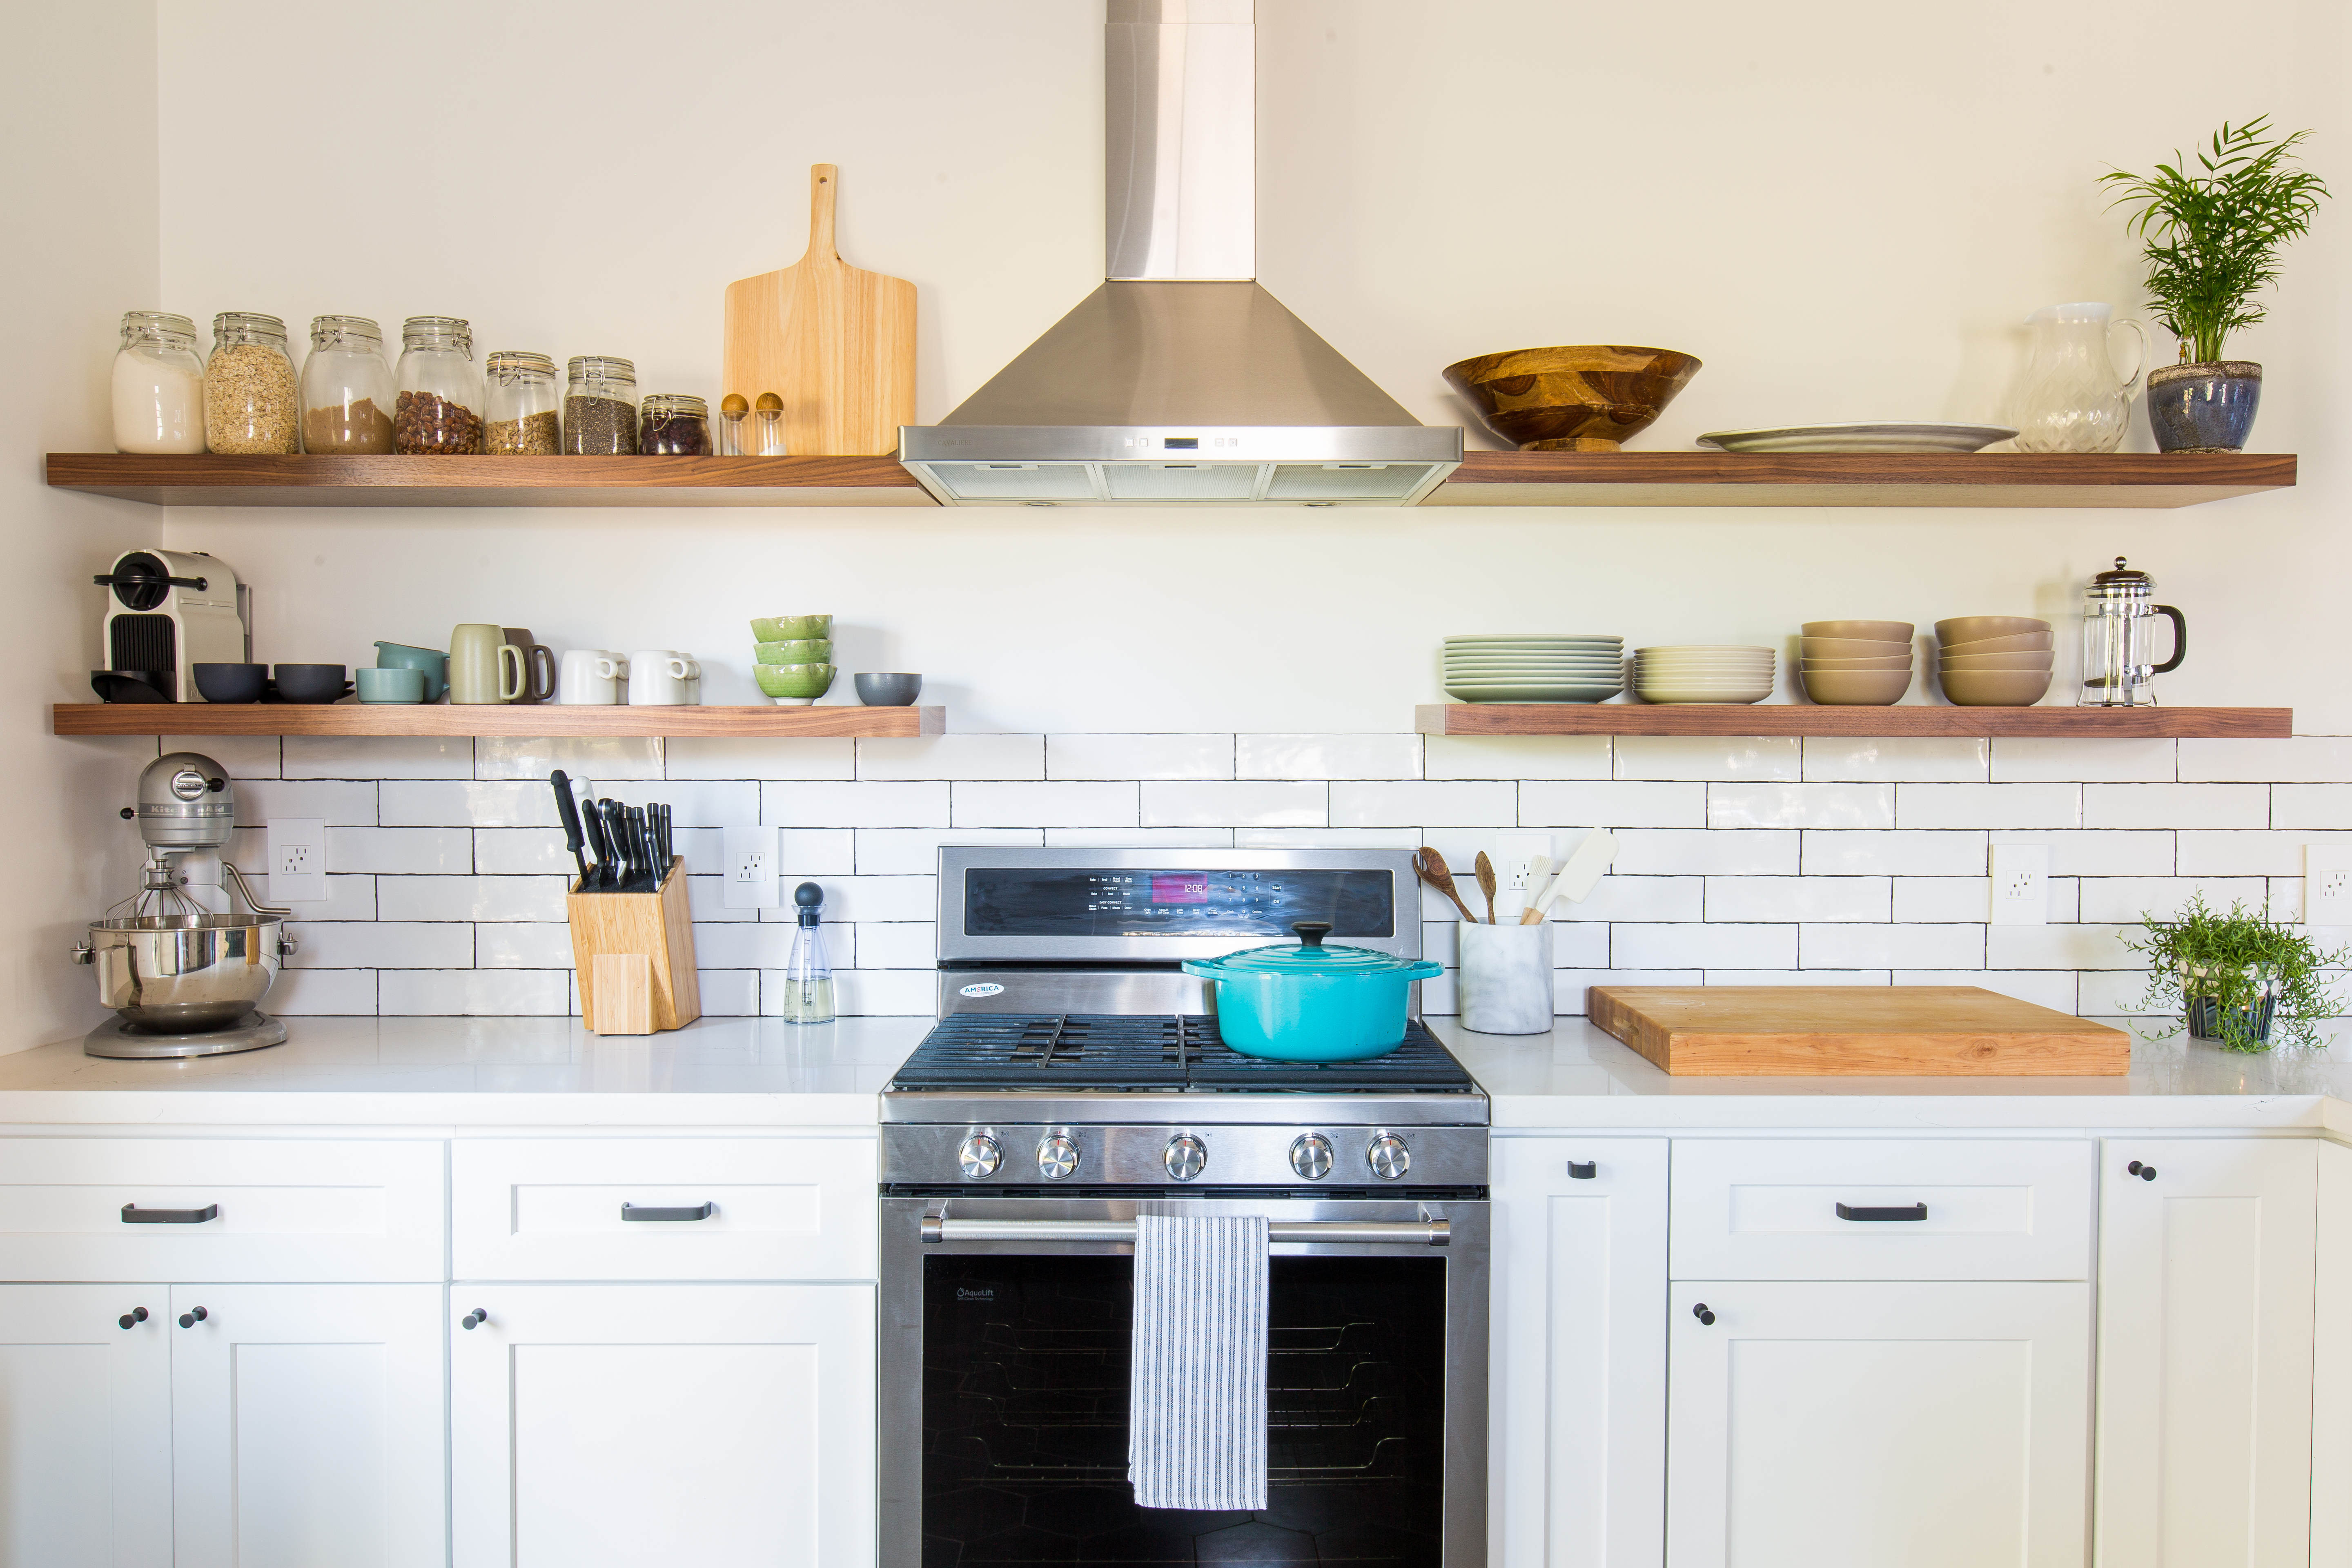 Clean Your Entire Kitchen in 30 Minutes | Kitchn